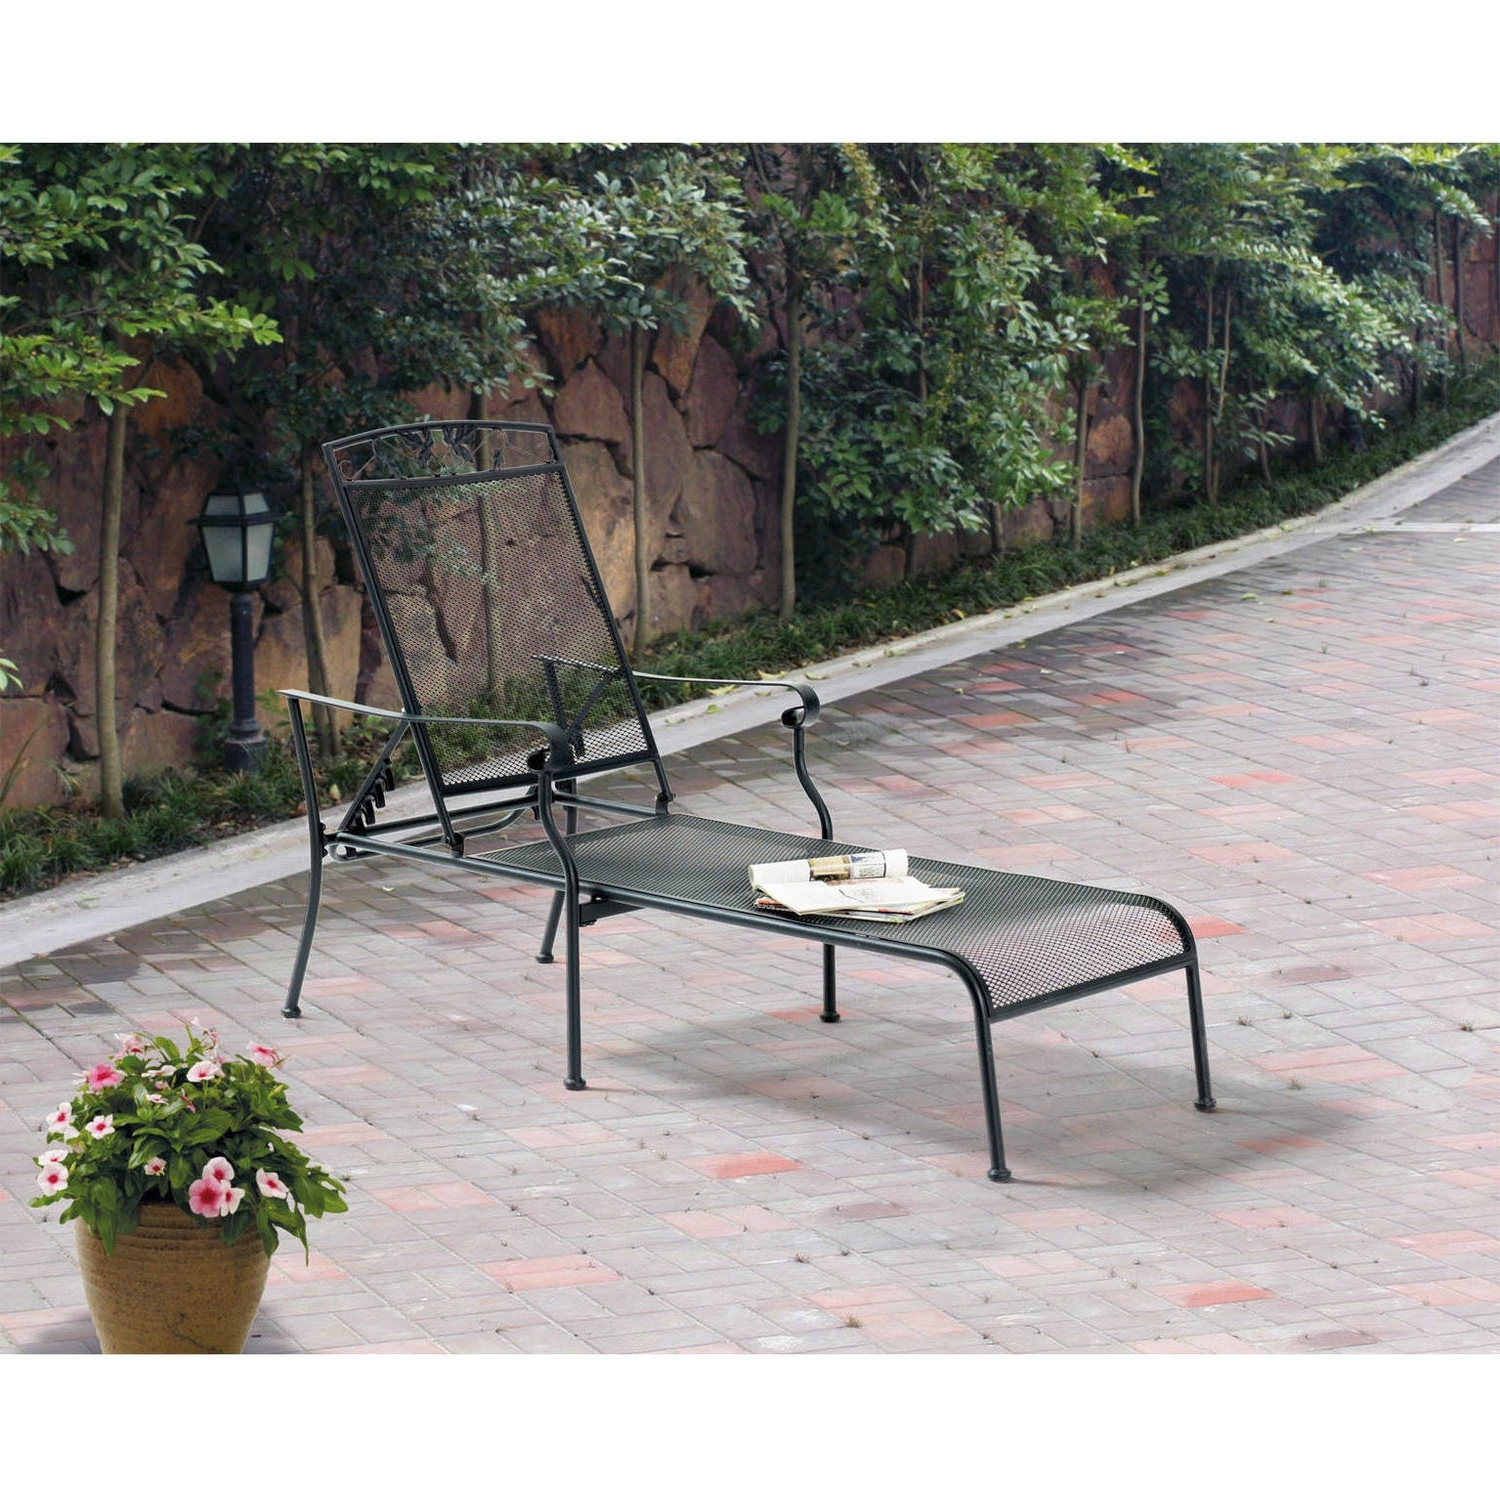 Mainstays Jefferson Wrought Iron Chaise Lounge, Black – Walmart With Regard To Widely Used Wrought Iron Chaise Lounges (View 11 of 15)